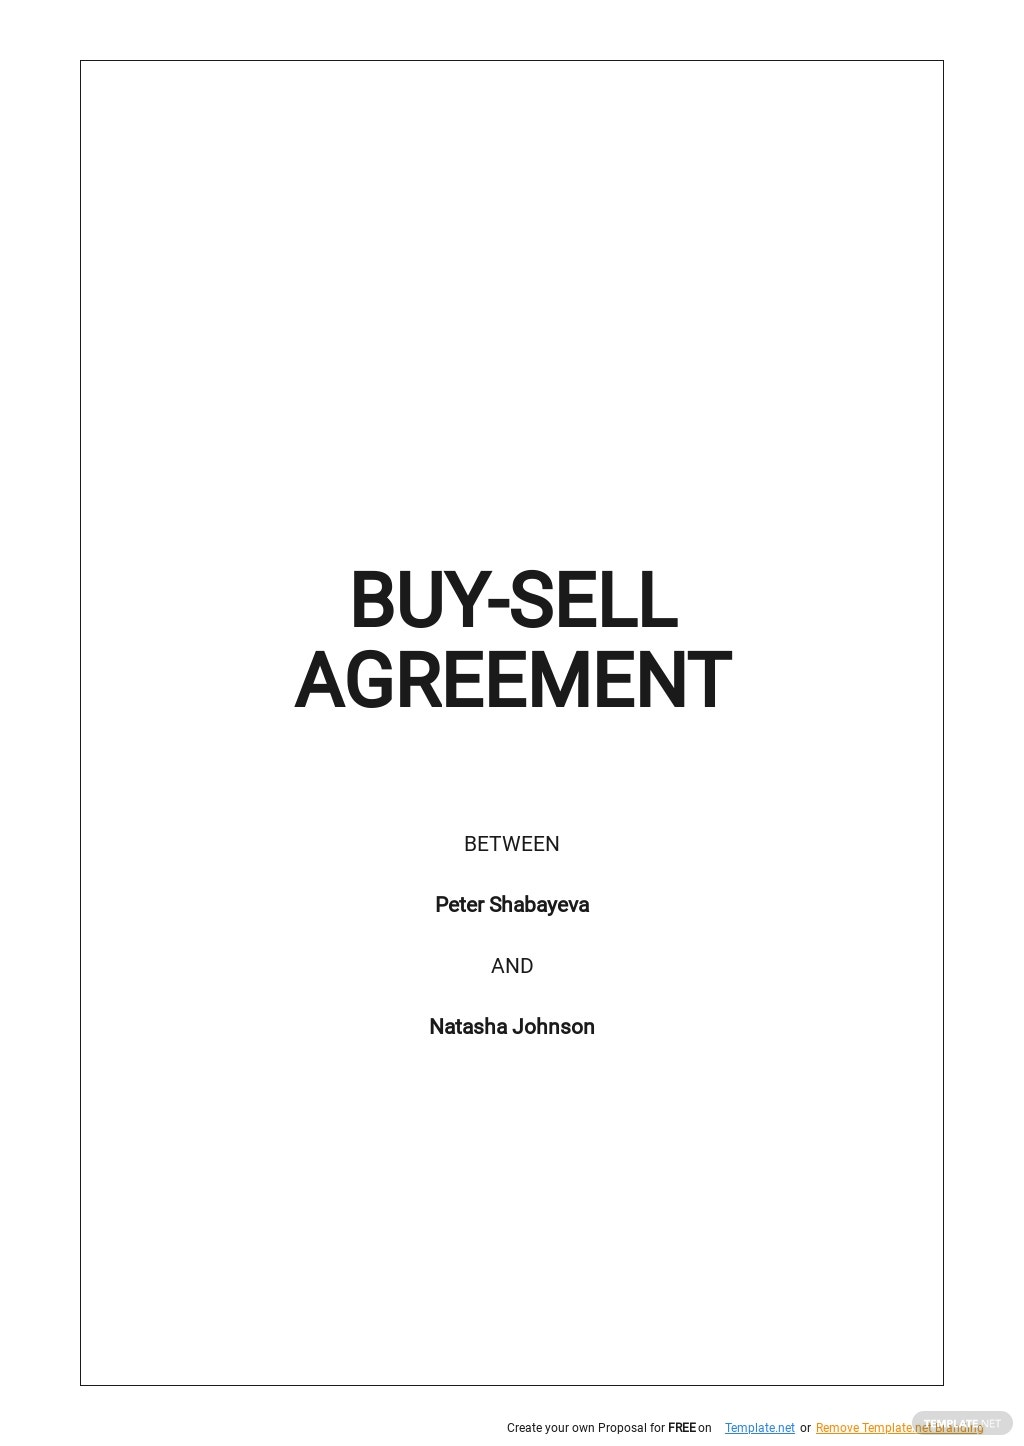 Buy Sell Agreement Template.jpe